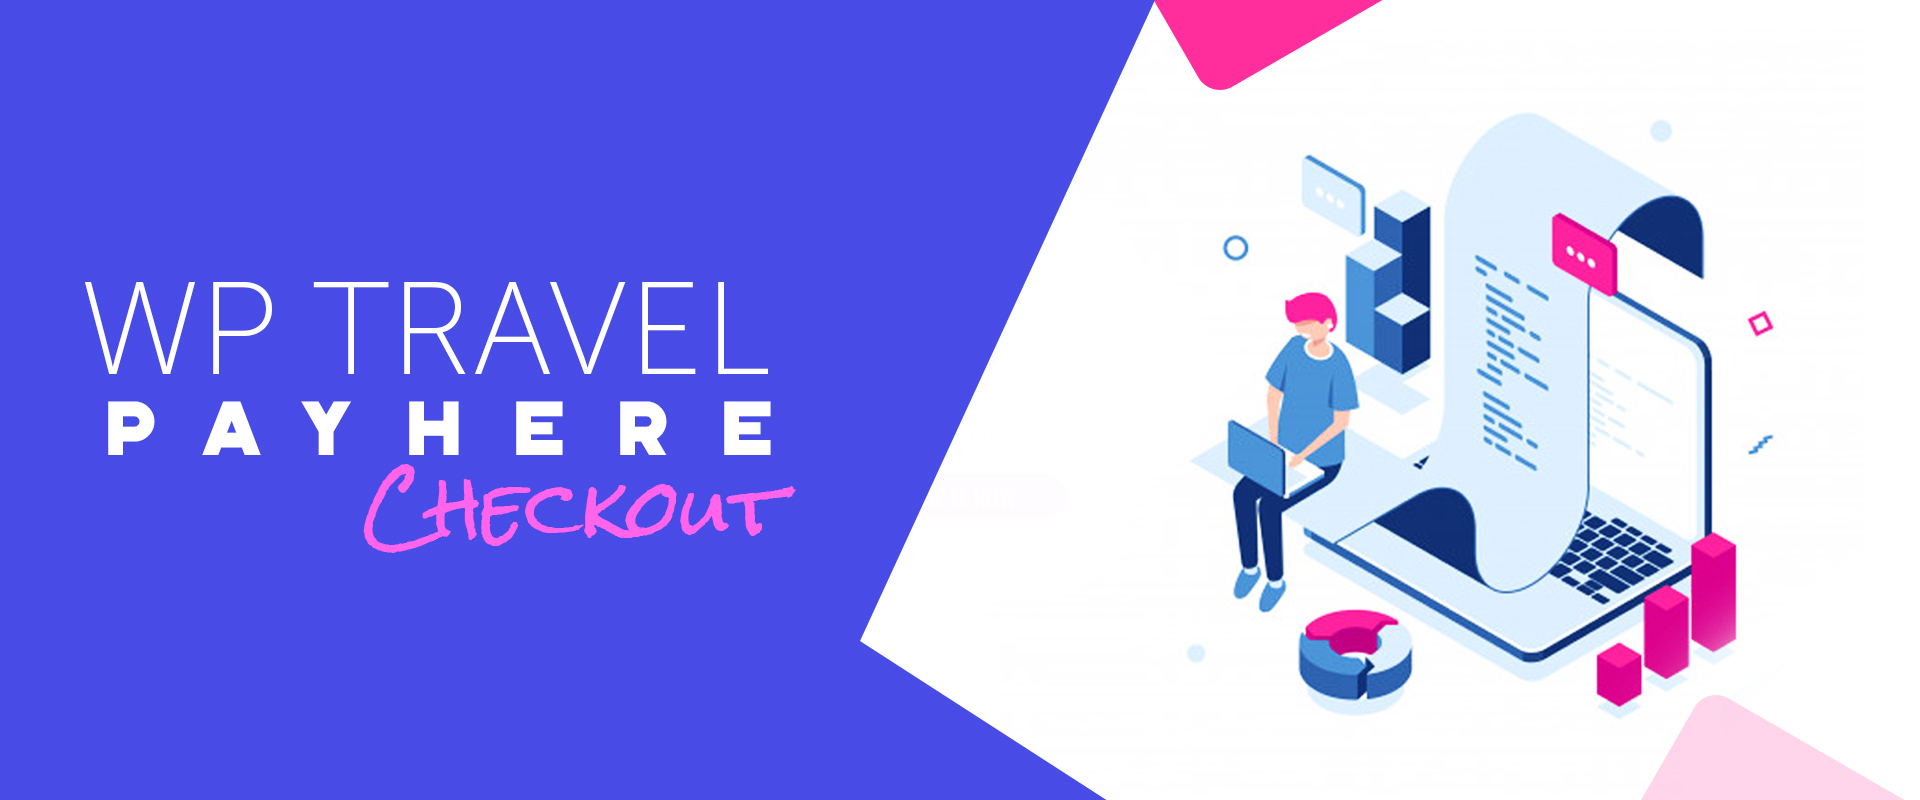 WP Travel PayHere Checkout